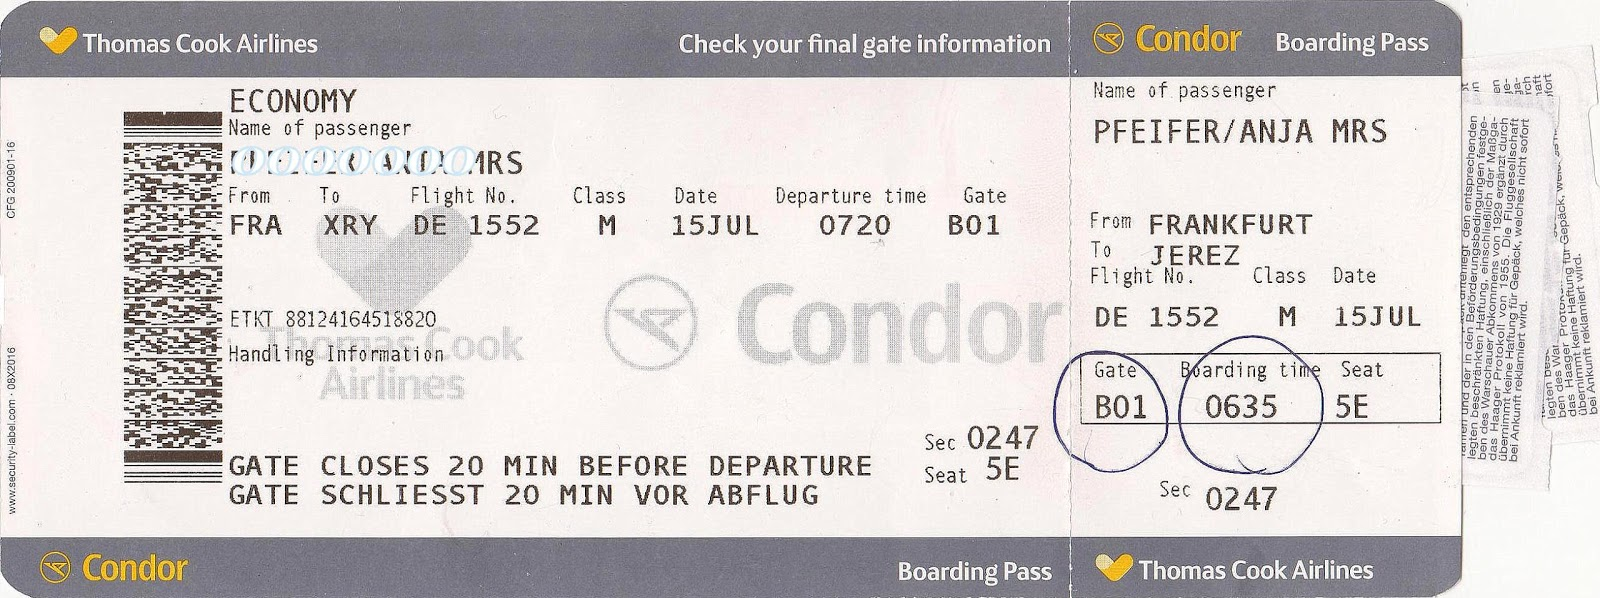 condor e ticket check in